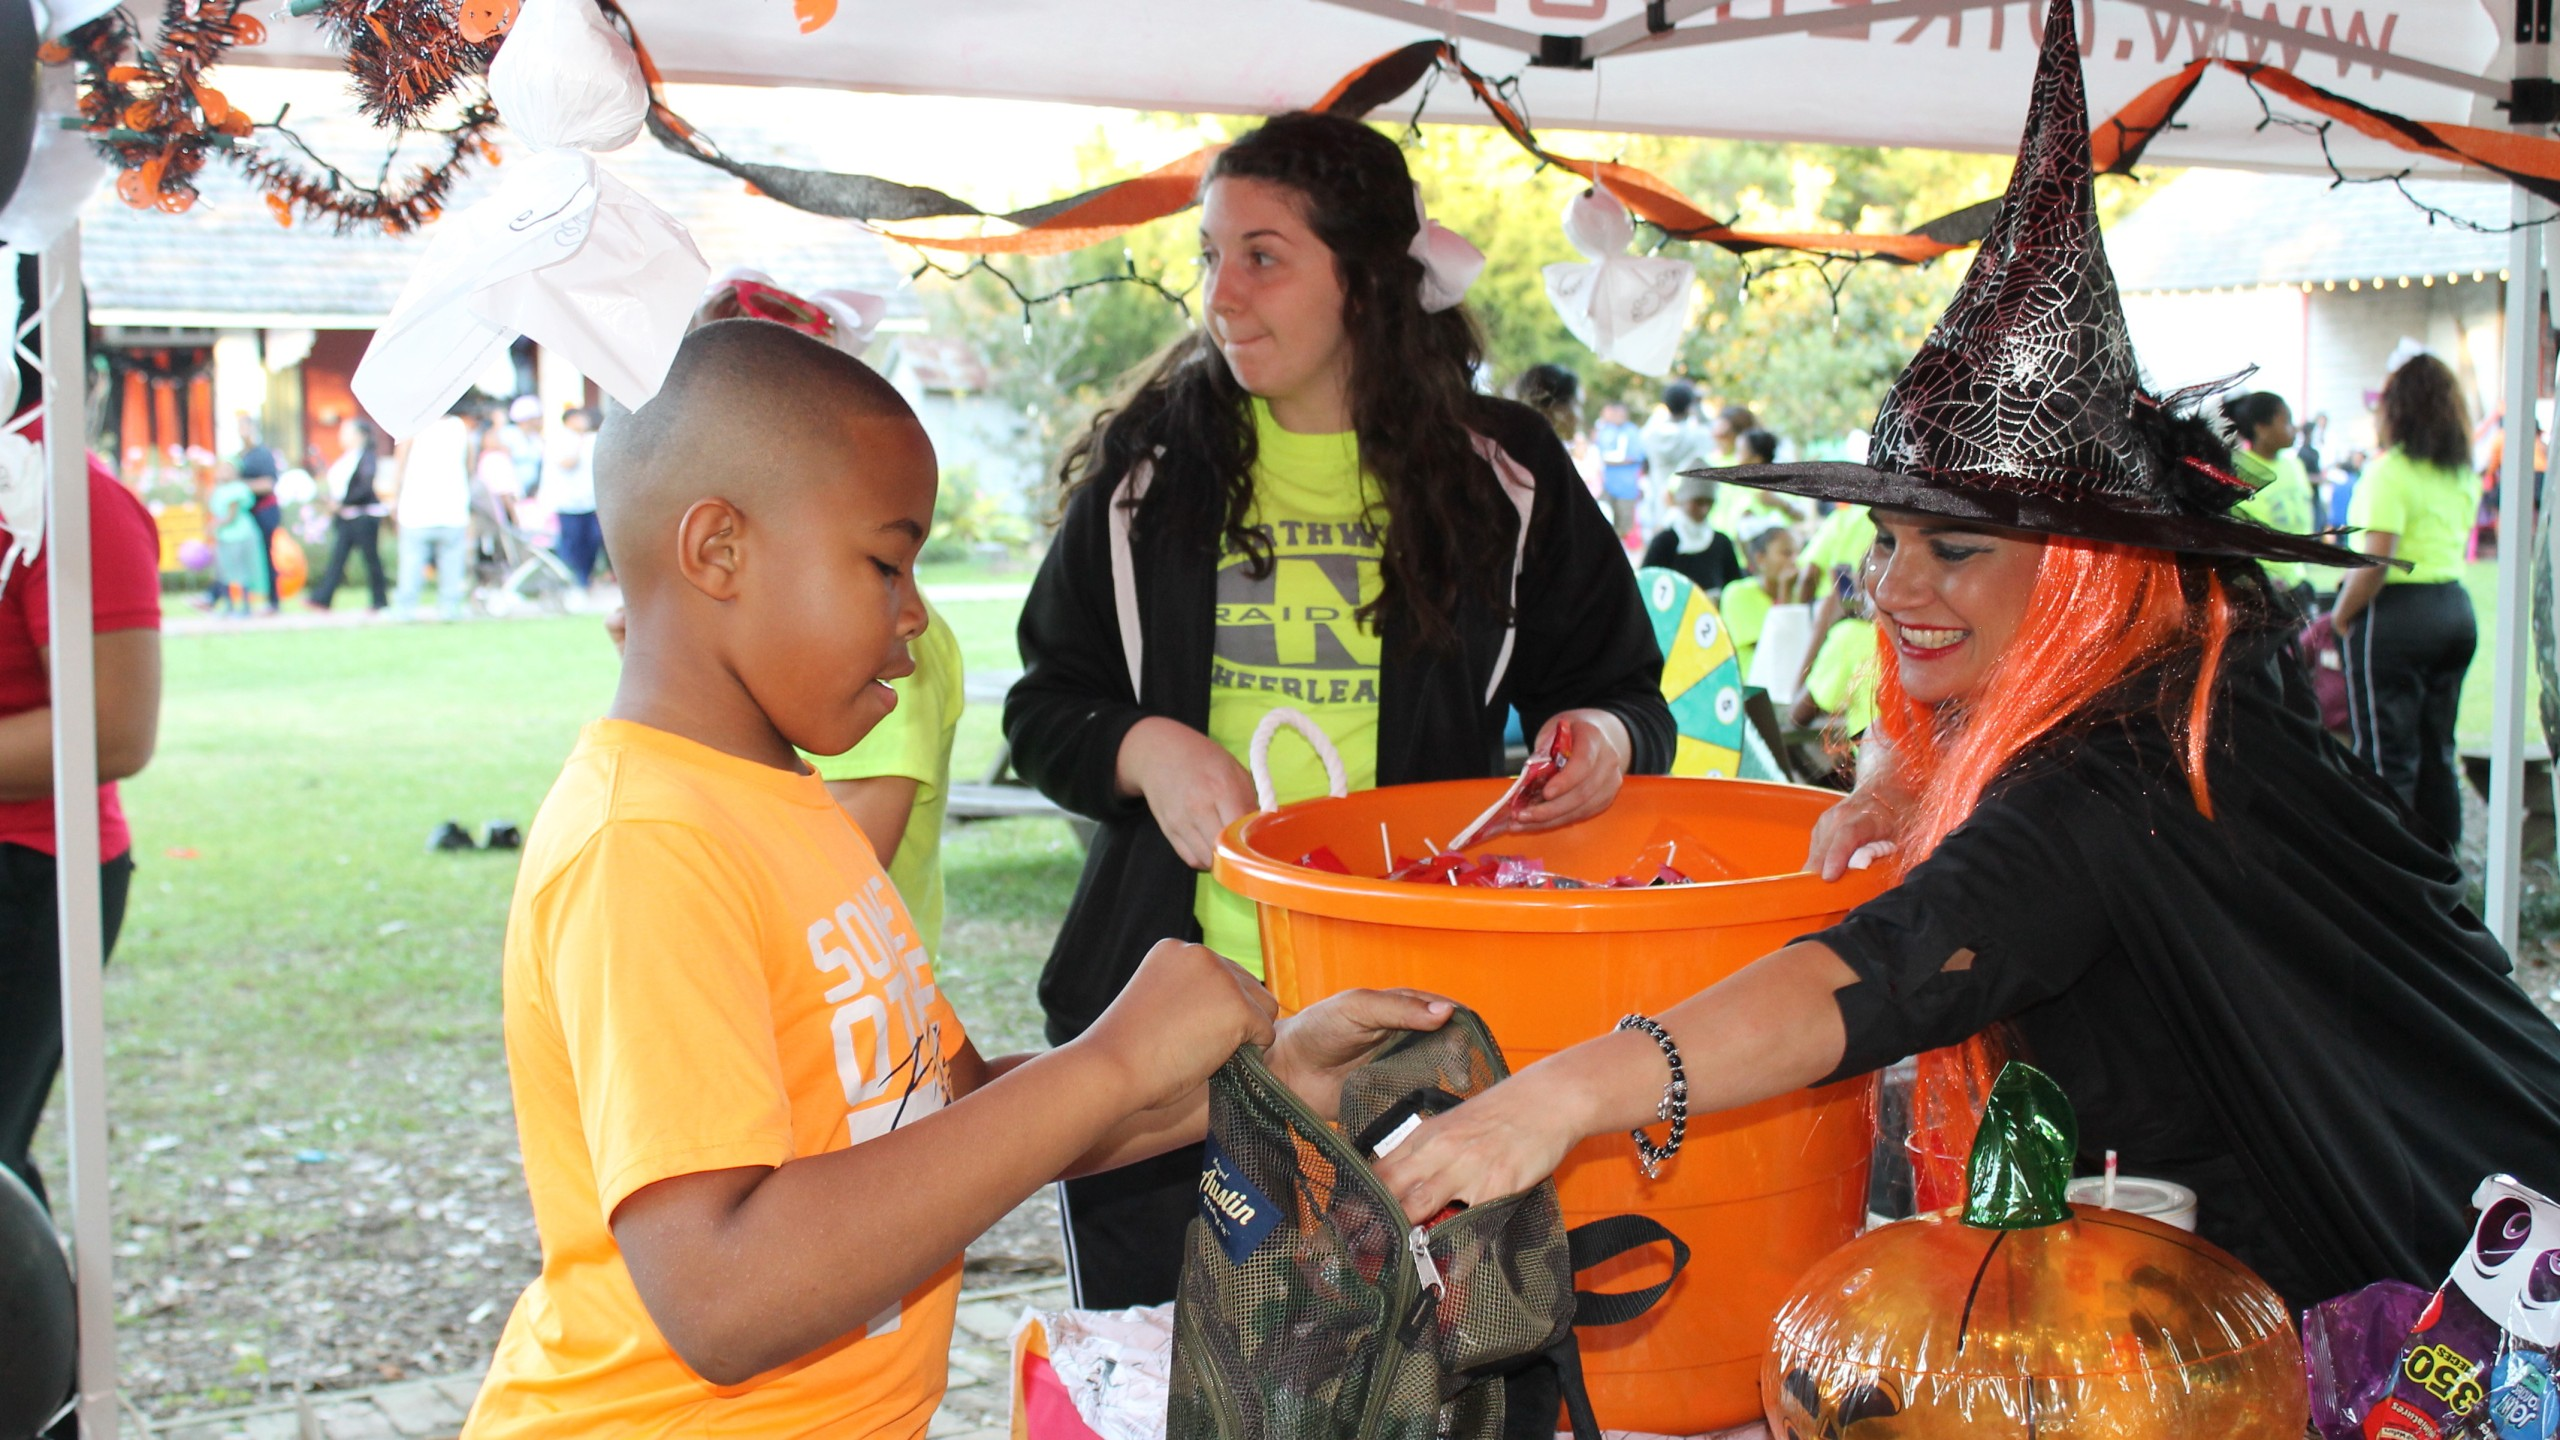 Halloween Events In Lafayette La 2020 Halloween events and fall celebrations around Acadiana